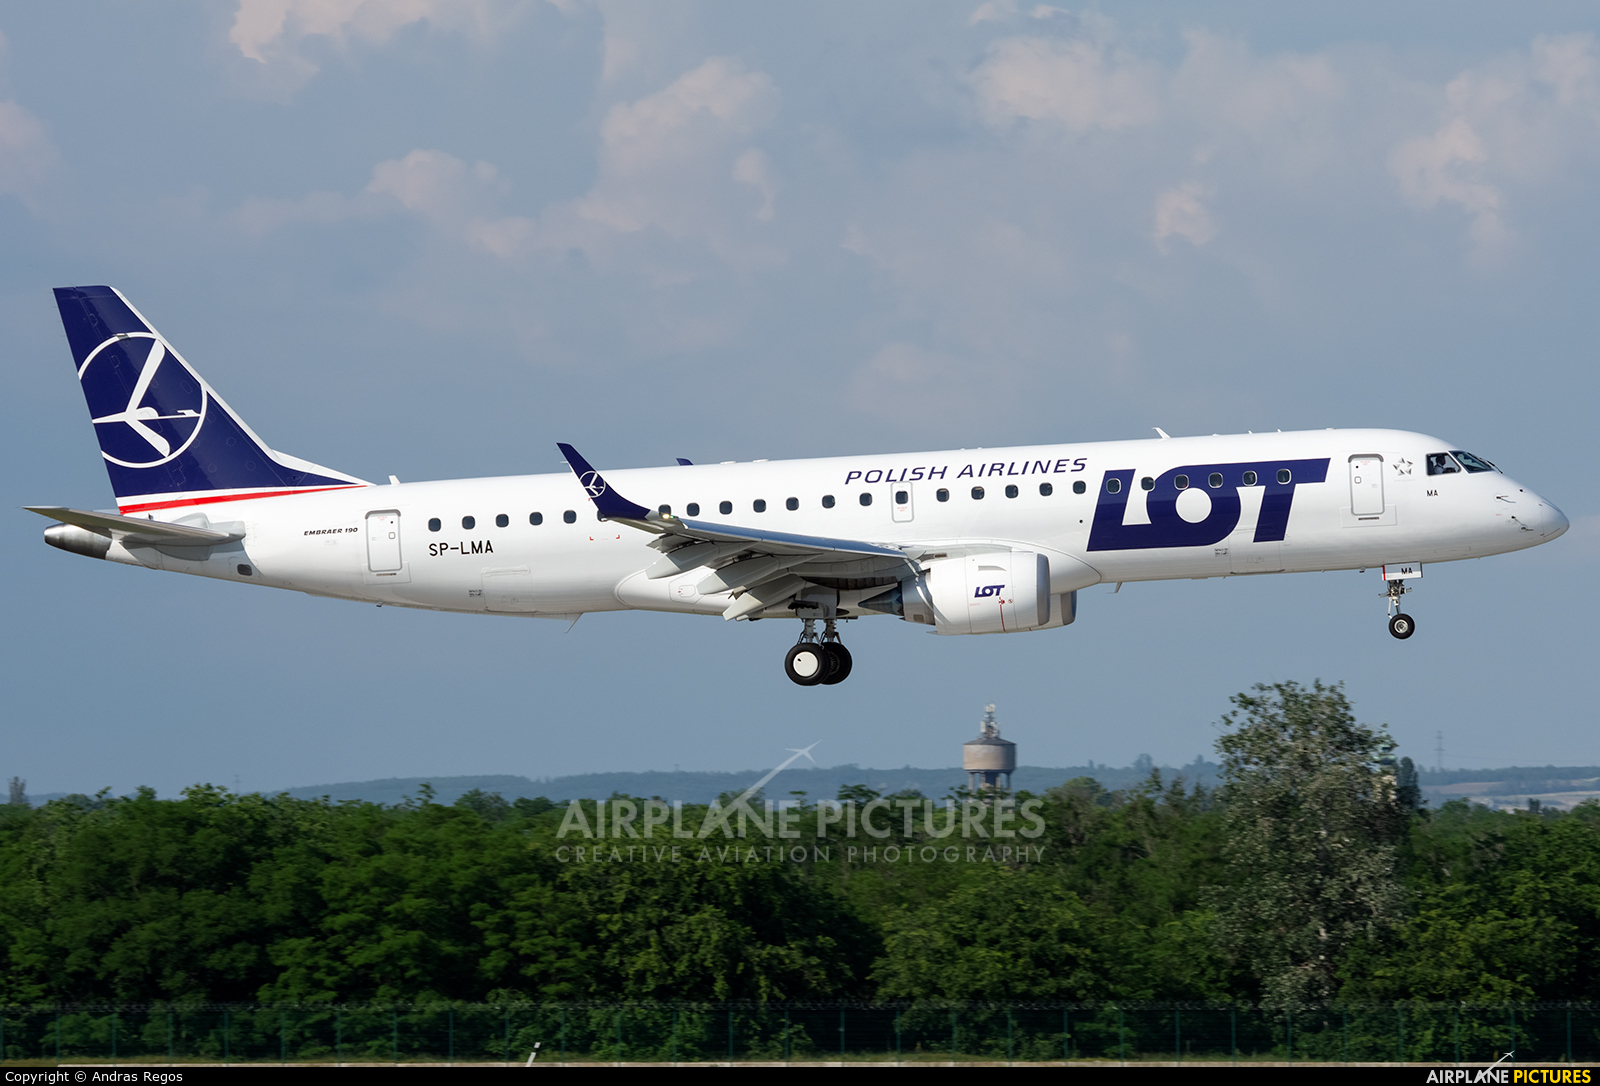 LOT - Polish Airlines SP-LMA aircraft at Budapest Ferenc Liszt International Airport